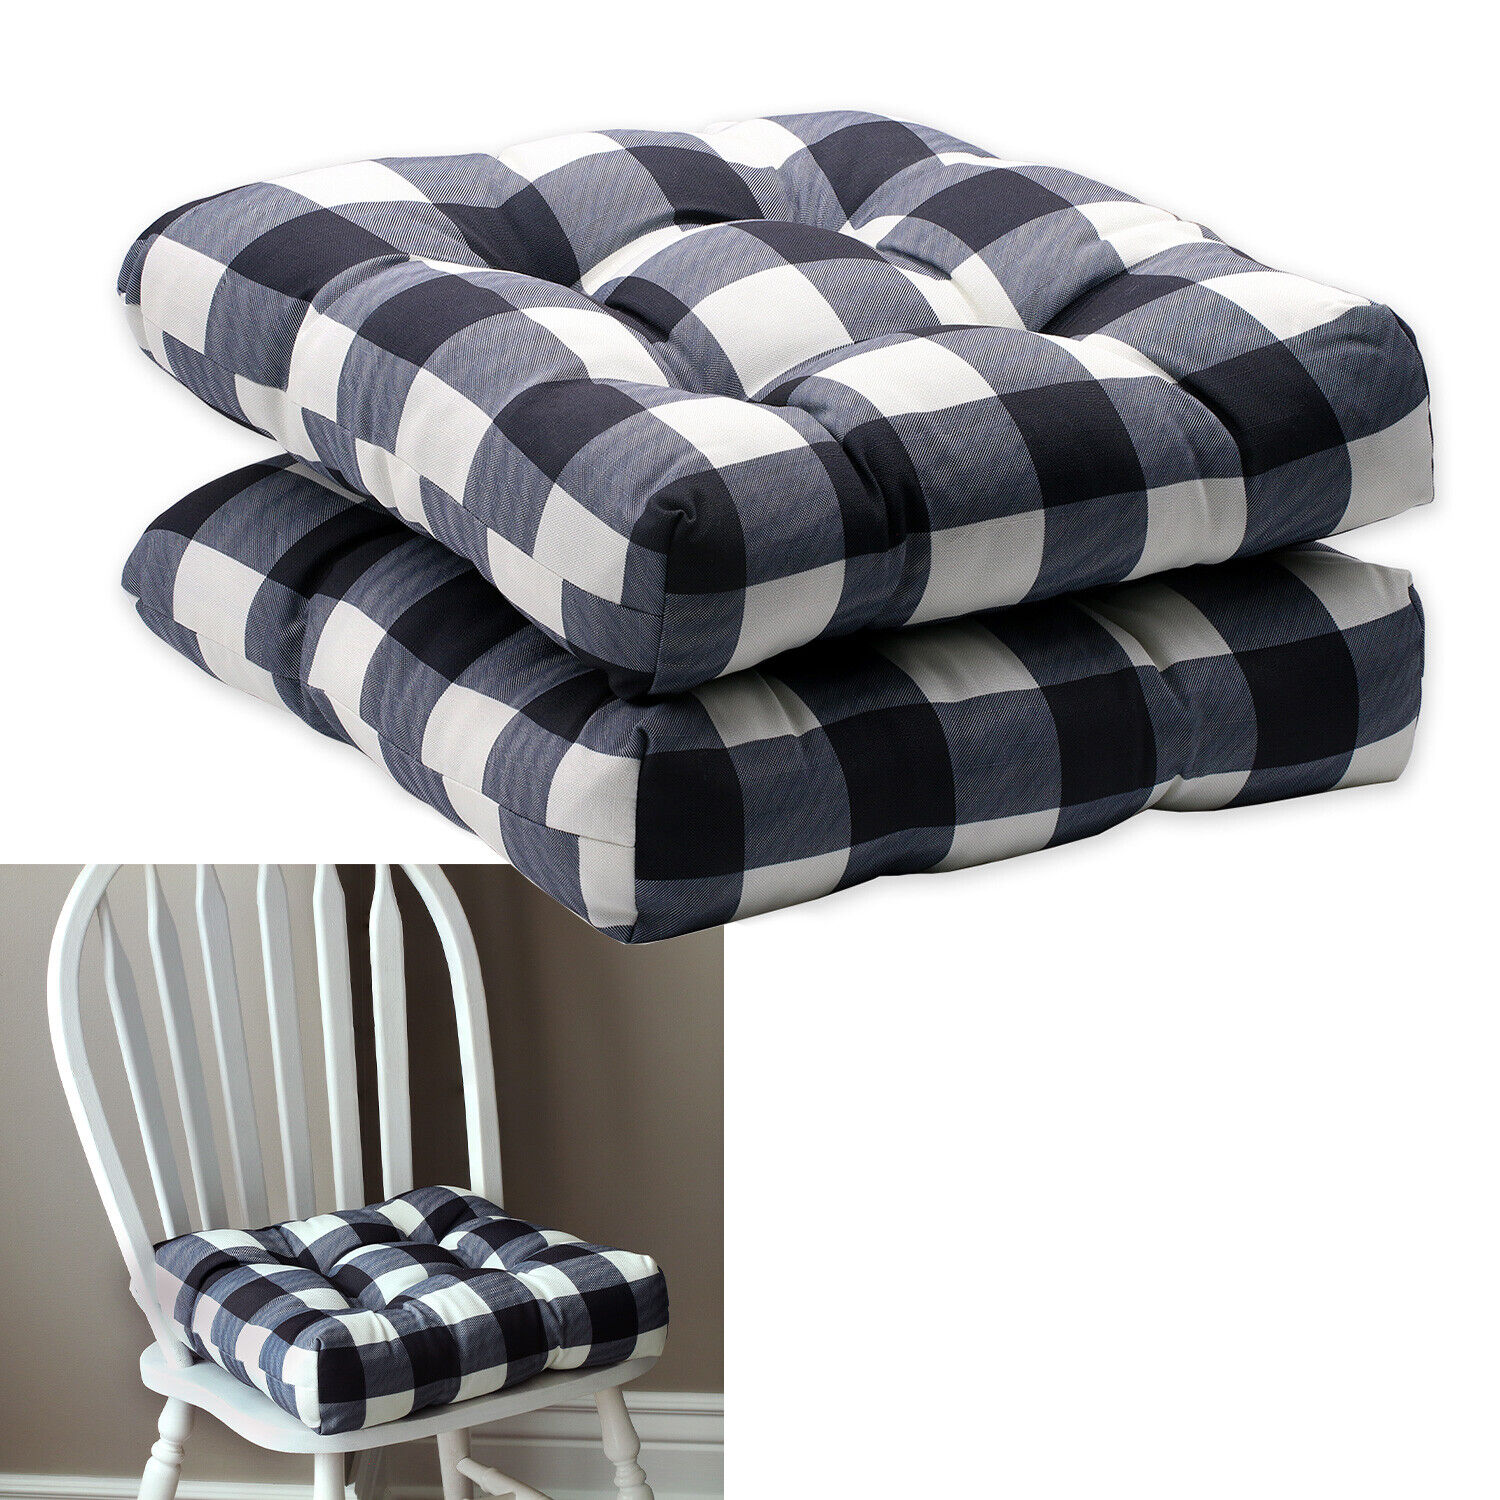 2-Pack Buffalo Check Kitchen Dining Chair Pad Seat Cushion with Ties Black White Home & Garden